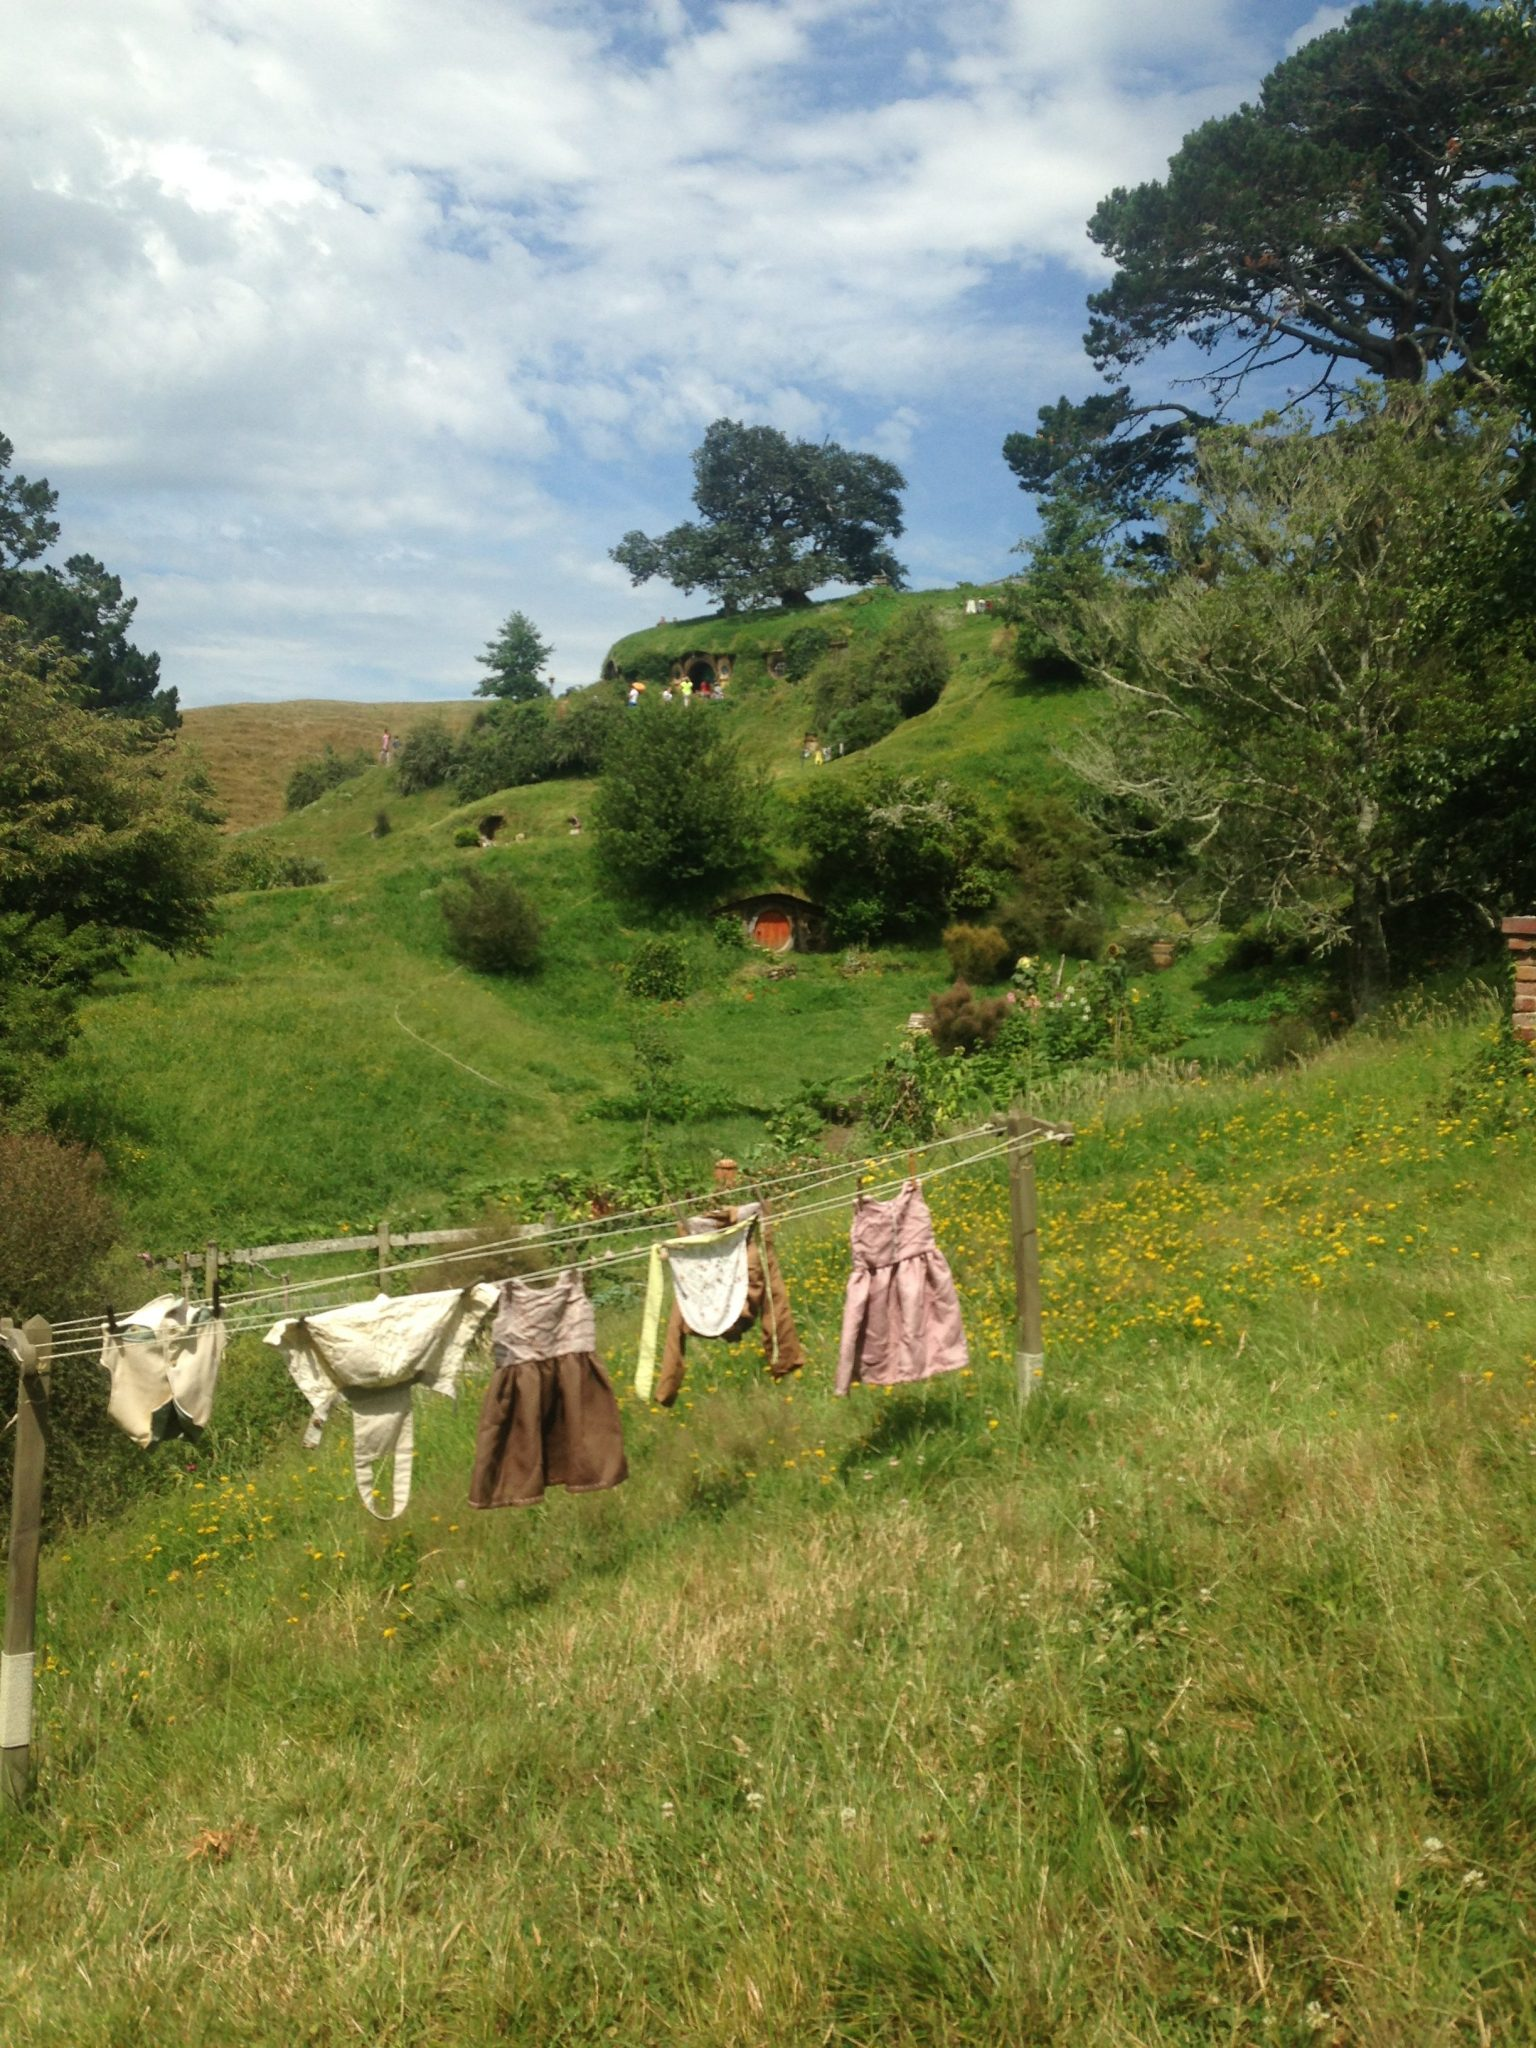 Attention to detail, the Shire, Hobbiton Movie Set, New Zealand.